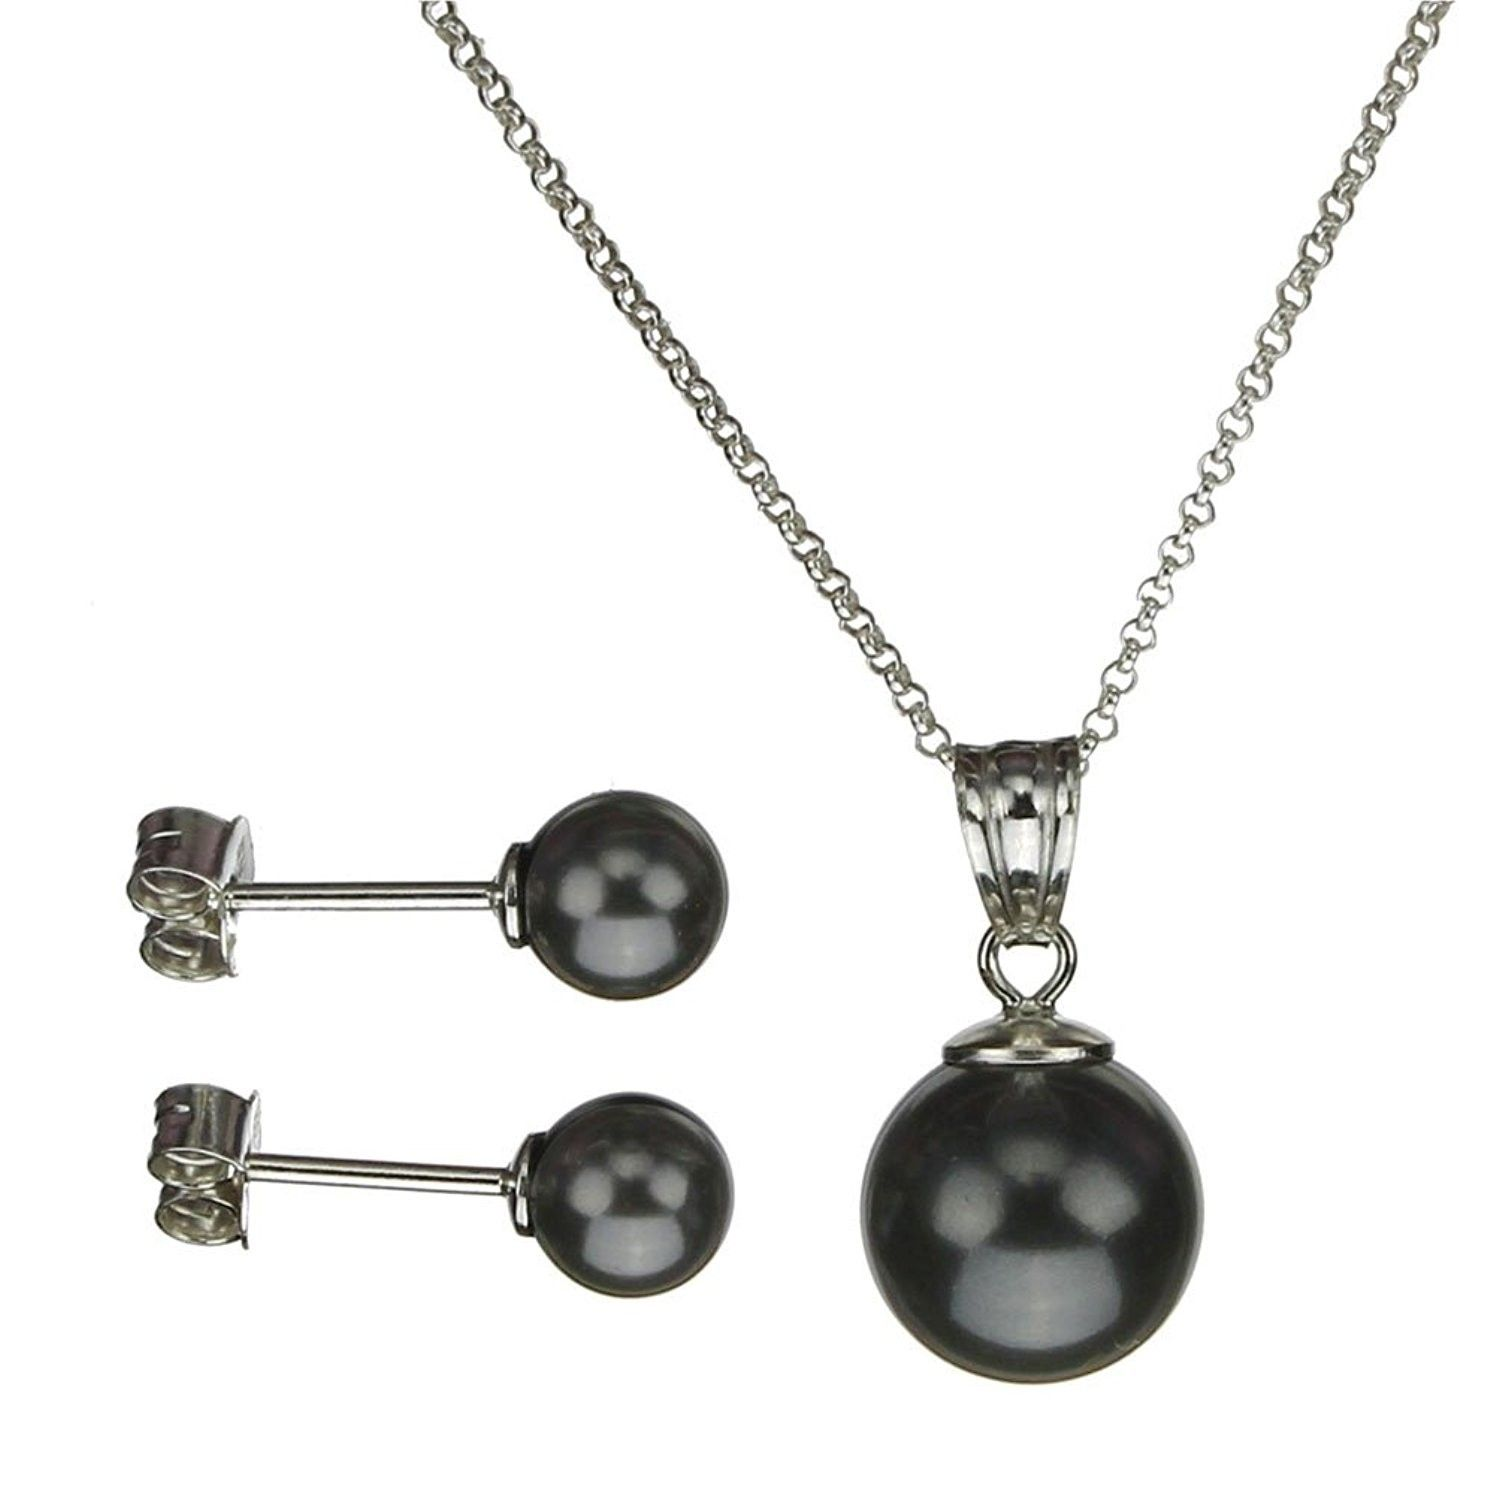 0e680c4b499 Jewelry Sets, Sterling Silver Chain Necklace Earrings Black Simulated Pearl  Pendant Made with Swarovski Crystals - CP11NXIH3WL #JewelrySets  #designerjewelry ...